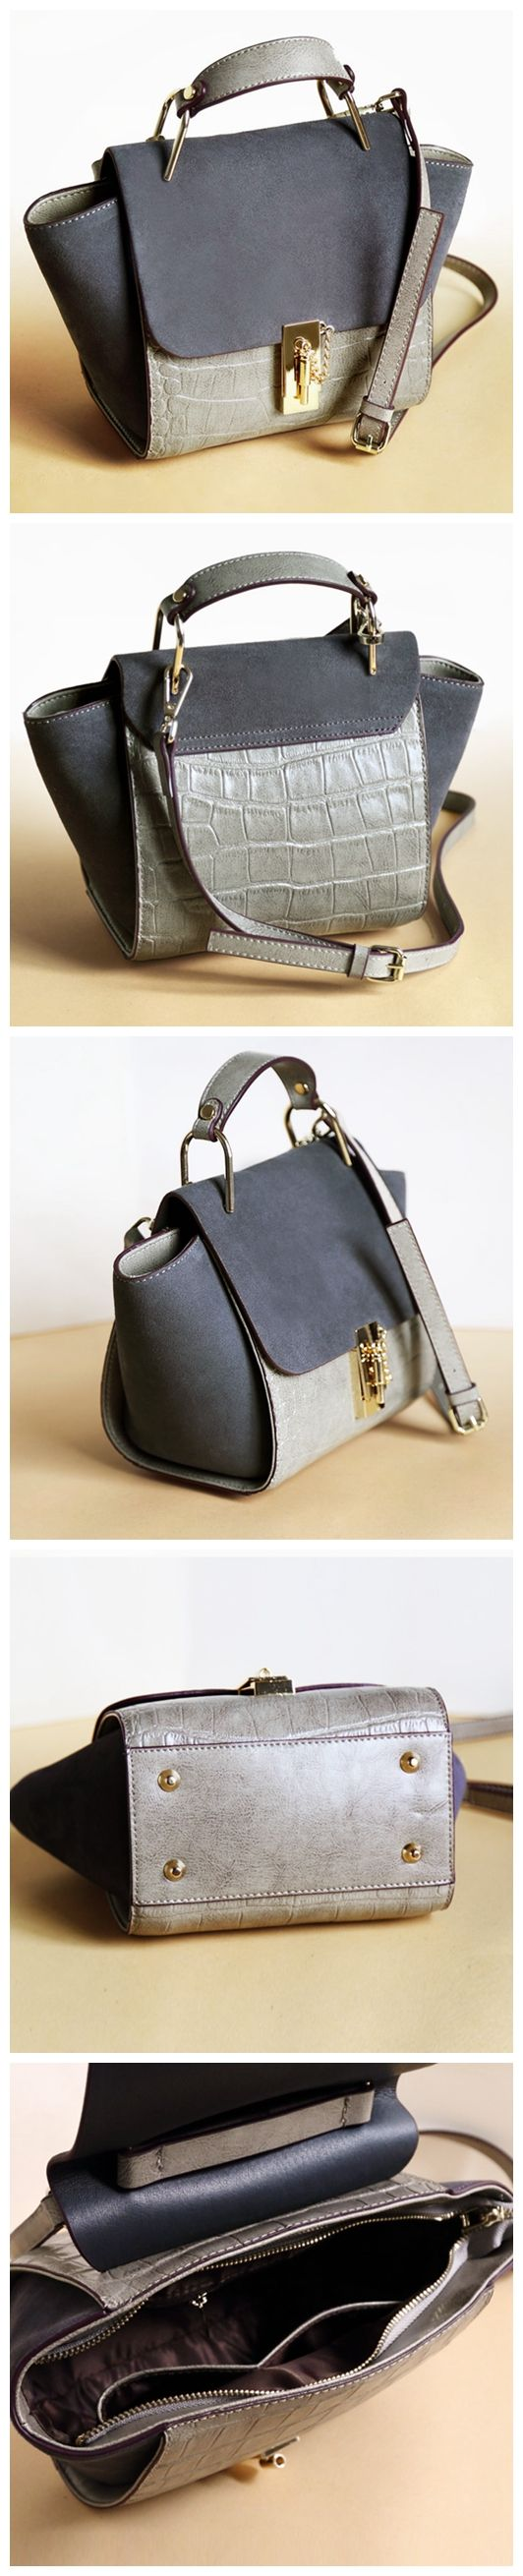 Women Fashion Modern Genuine Leather Bag Shoulder Bag Handbag Messenger Bag AM01 Overview: Design: Women Fashion Handbag In Stock: 3-5 days For Making Include: Only Handbag Color: Gray Leather: Cow Le